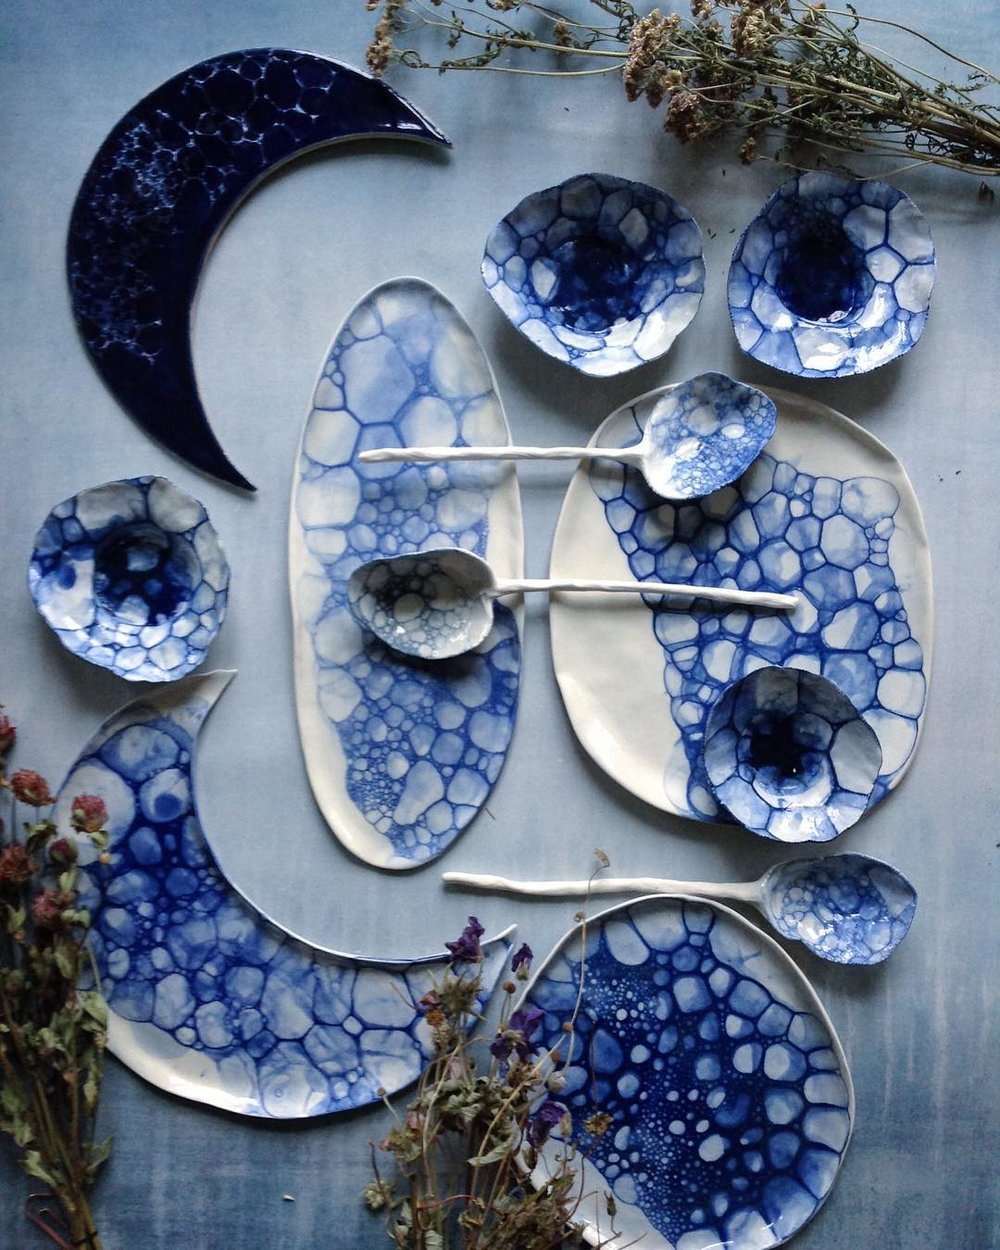 Liiiiike....majorly crushing on all these pieces made by  Meadow Ceramics ! Omg. Beautiful!